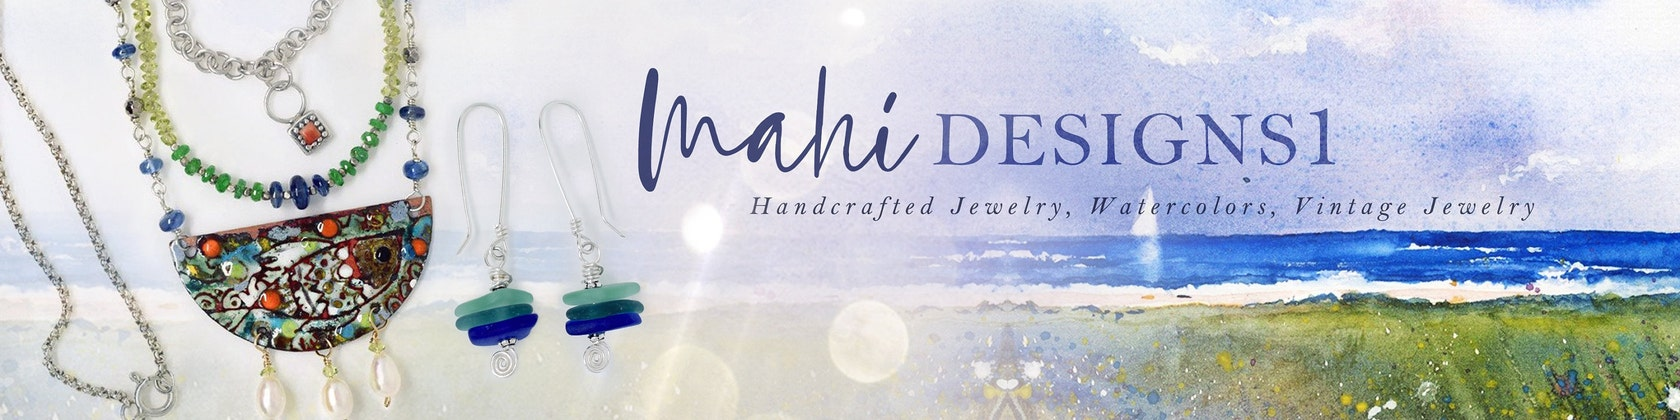 47854bdeb Handcrafted and Vintage Jewelry Watercolors Charms by MahiDesigns1